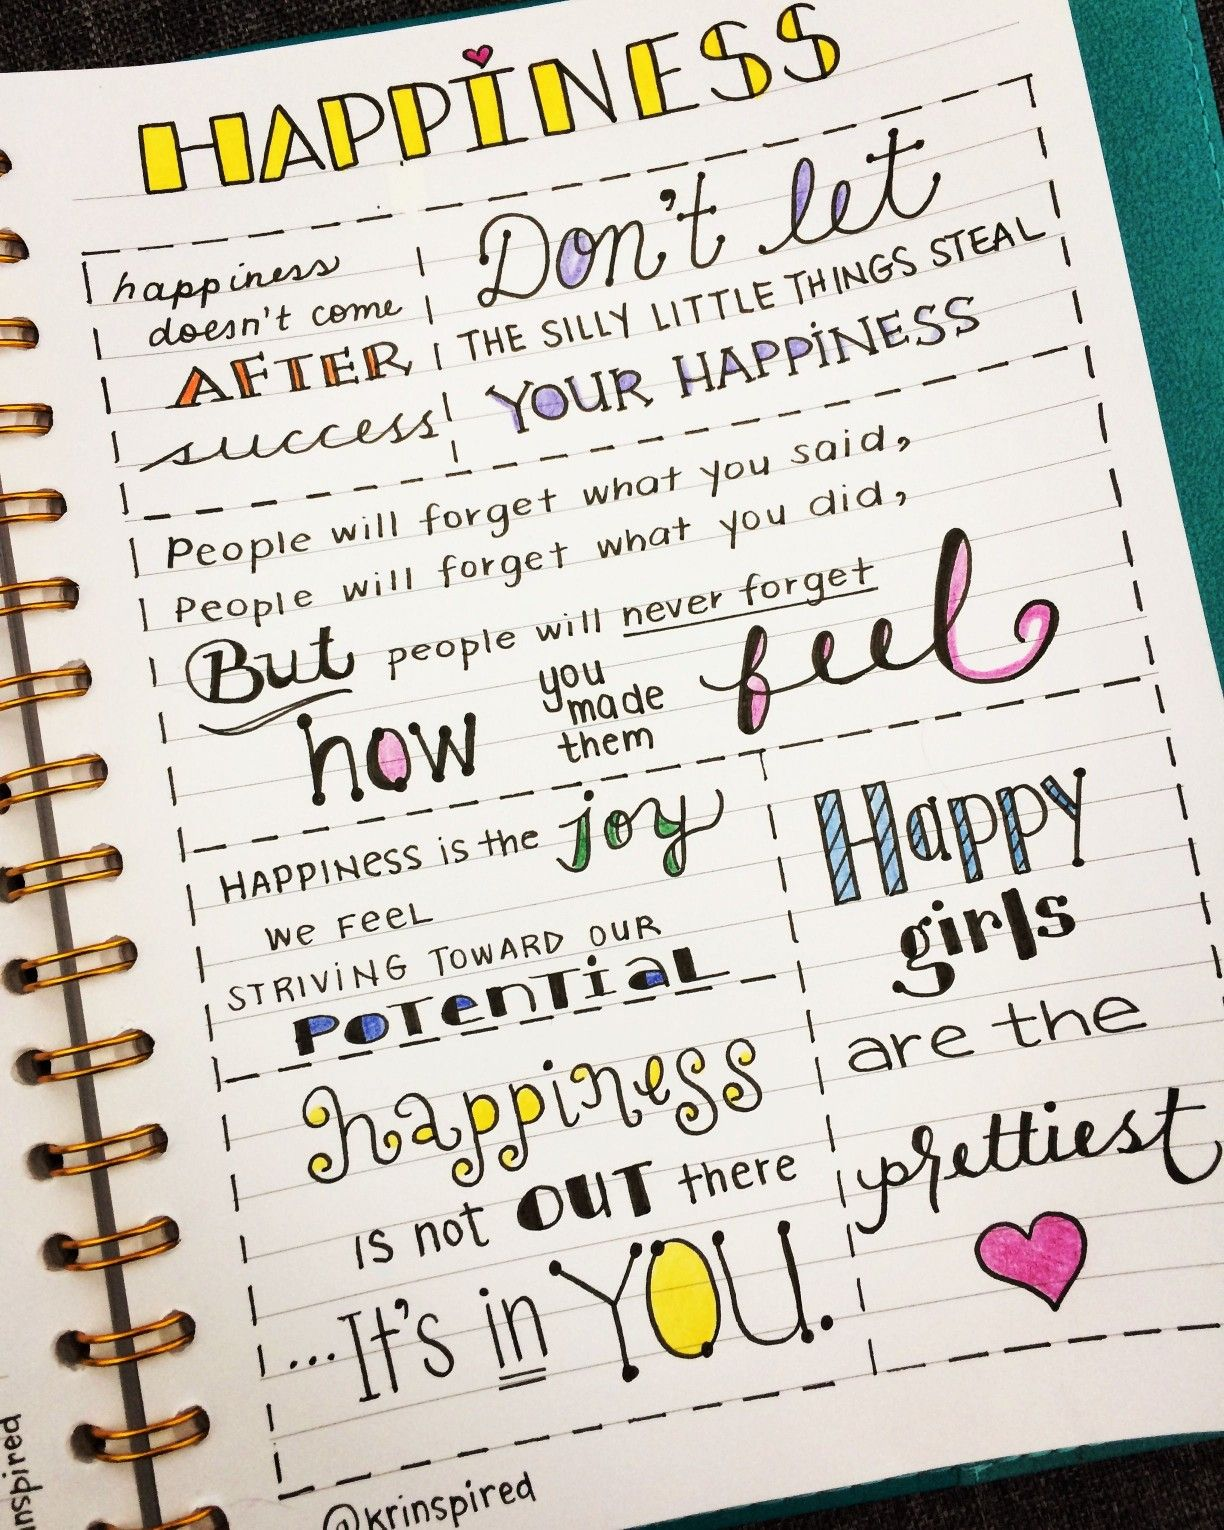 Contoh Diary Sehari Hari : contoh, diary, sehari, Myrthe, Broersma, Bullet, Juornals, Journal, Writing,, Quotes,, Books